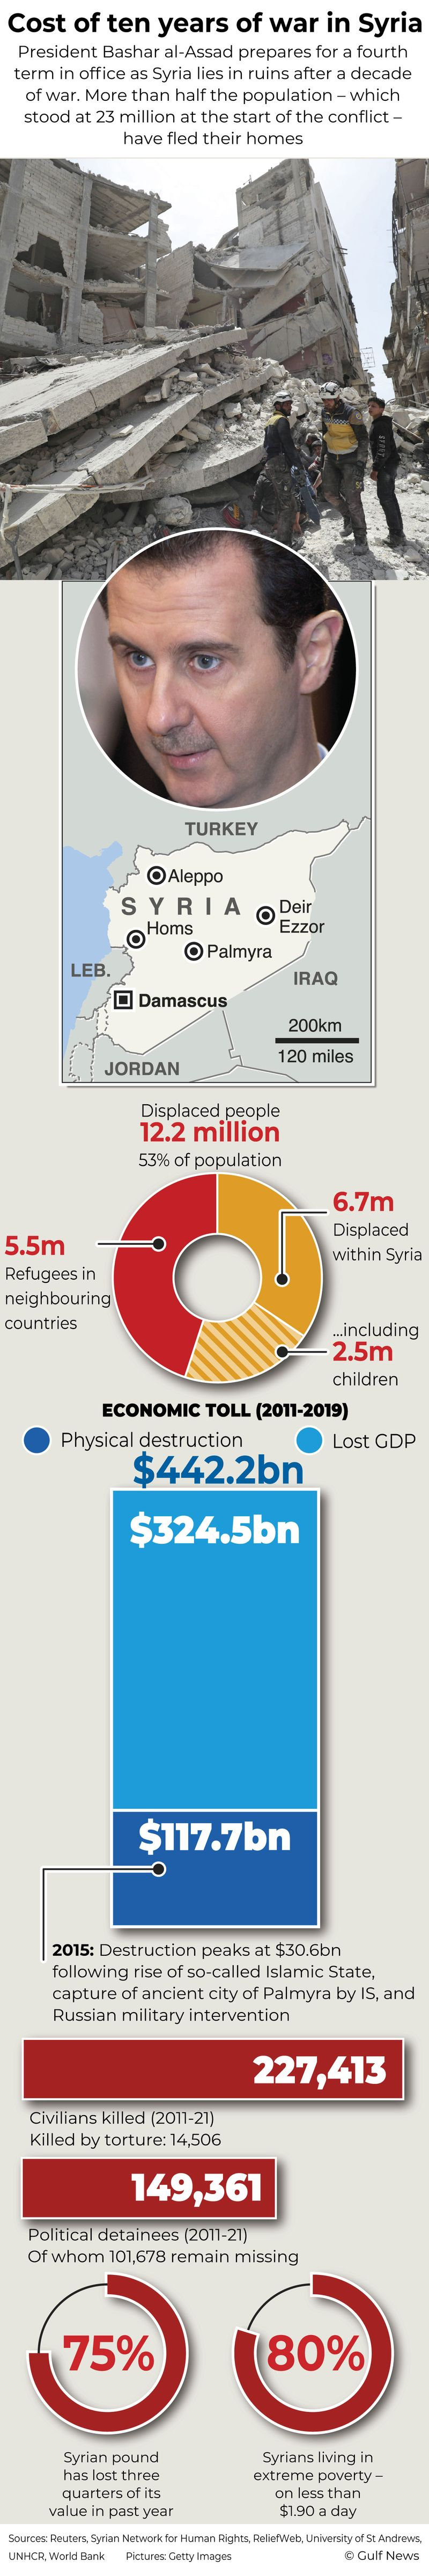 Infographic: Cost of ten years of war in Syria